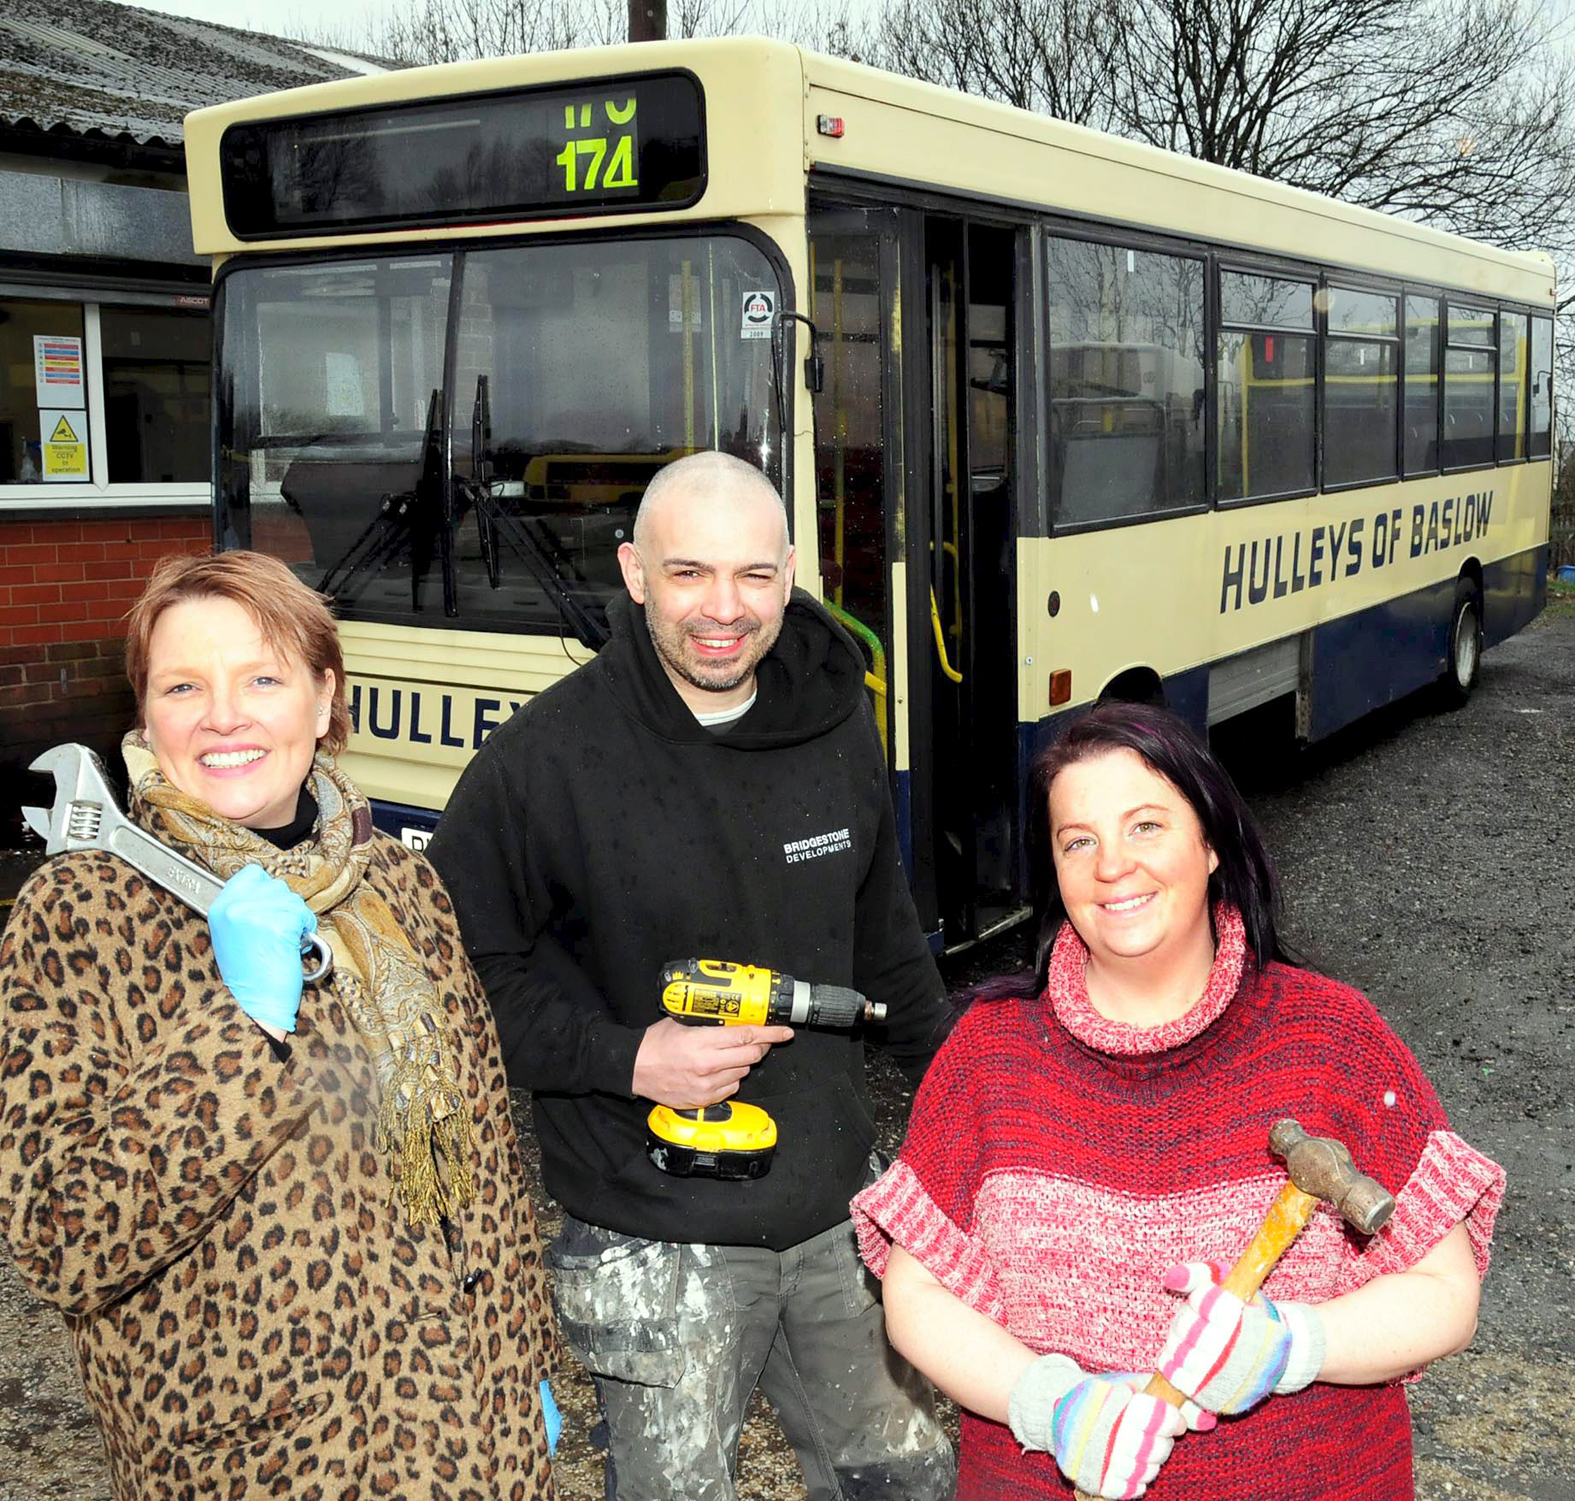 Volunteers buy bus to help homeless people